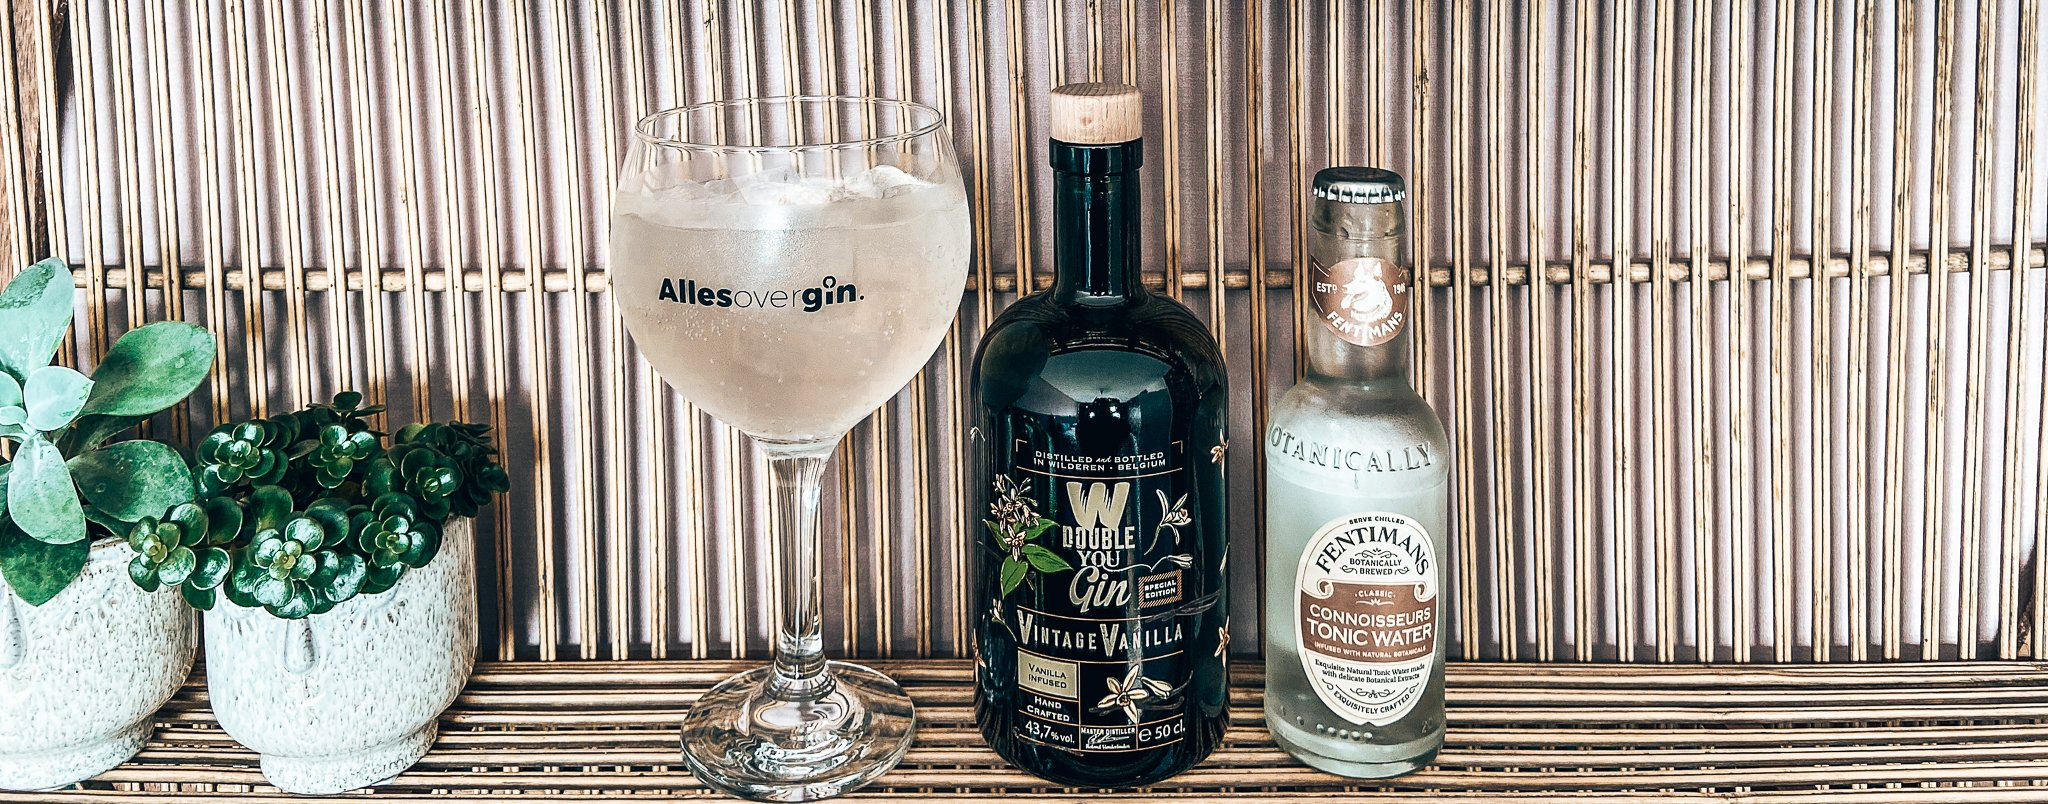 GT Vanilla, gin-tonic recept, Alles over gin.